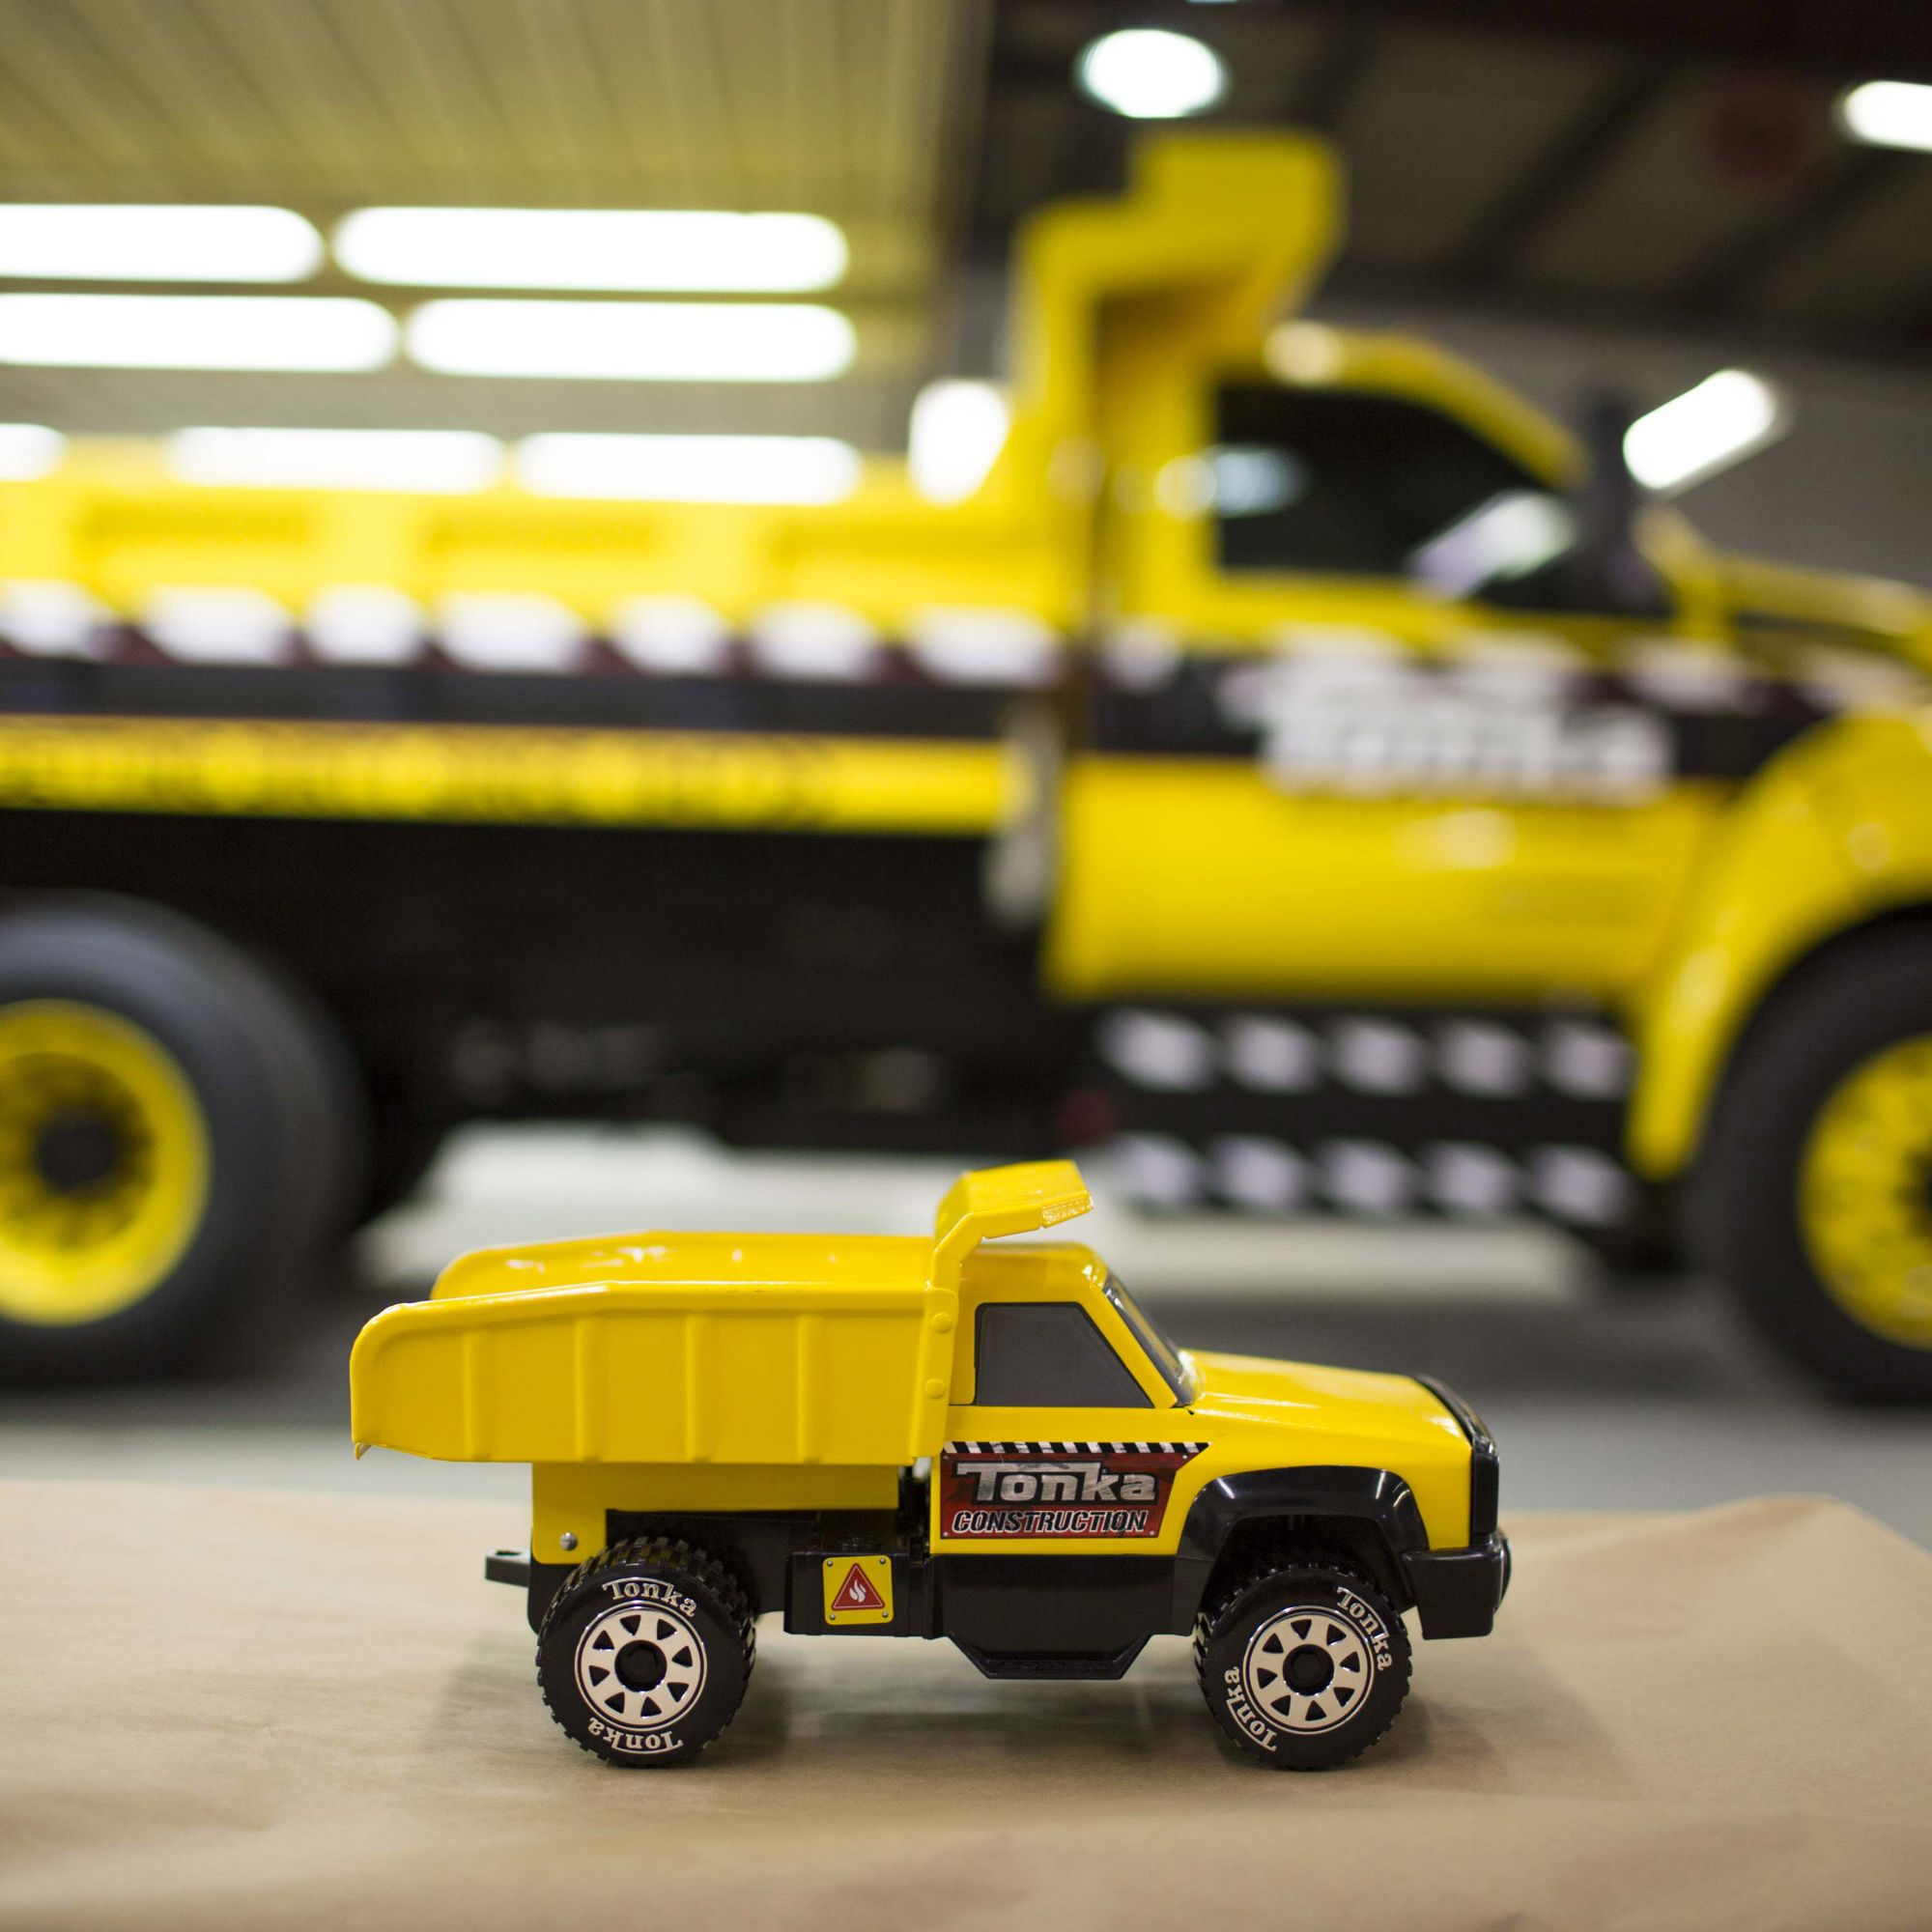 The mighty Ford F-750 TONKA truck – which will be on display at major work truck, commercial and vocational trade shows through the end of the year – is a collaboration between Ford and Funrise Toy Corporation,The mighty Ford F-750 TONKA truck – which will be on display at major work truck, commercial and vocational trade shows through the end of the year – is a collaboration between Ford and Funrise Toy Corporation